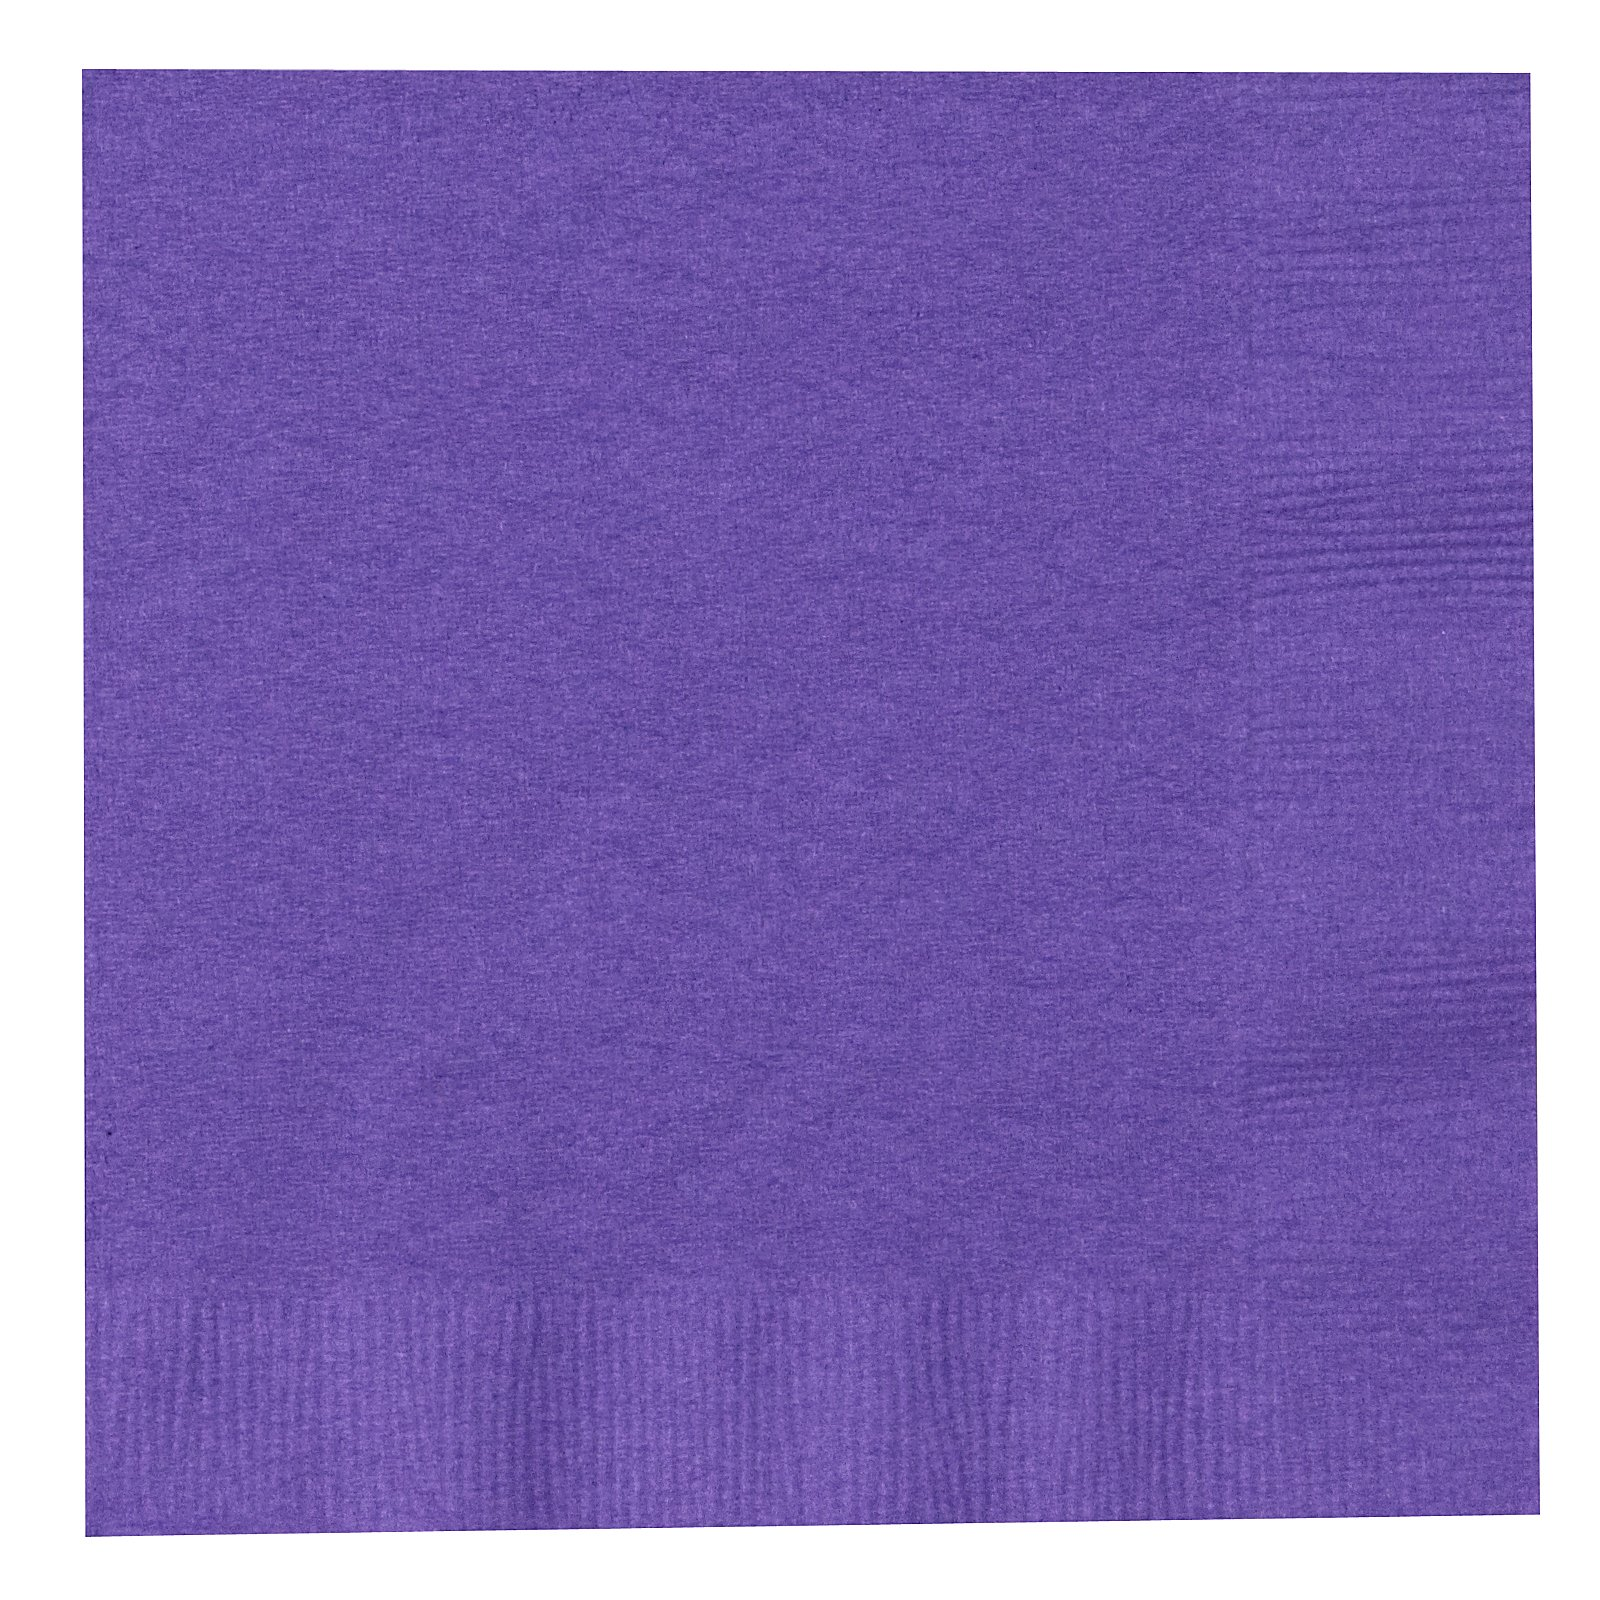 Perfect Purple (Purple) Beverage Napkins (50 count)